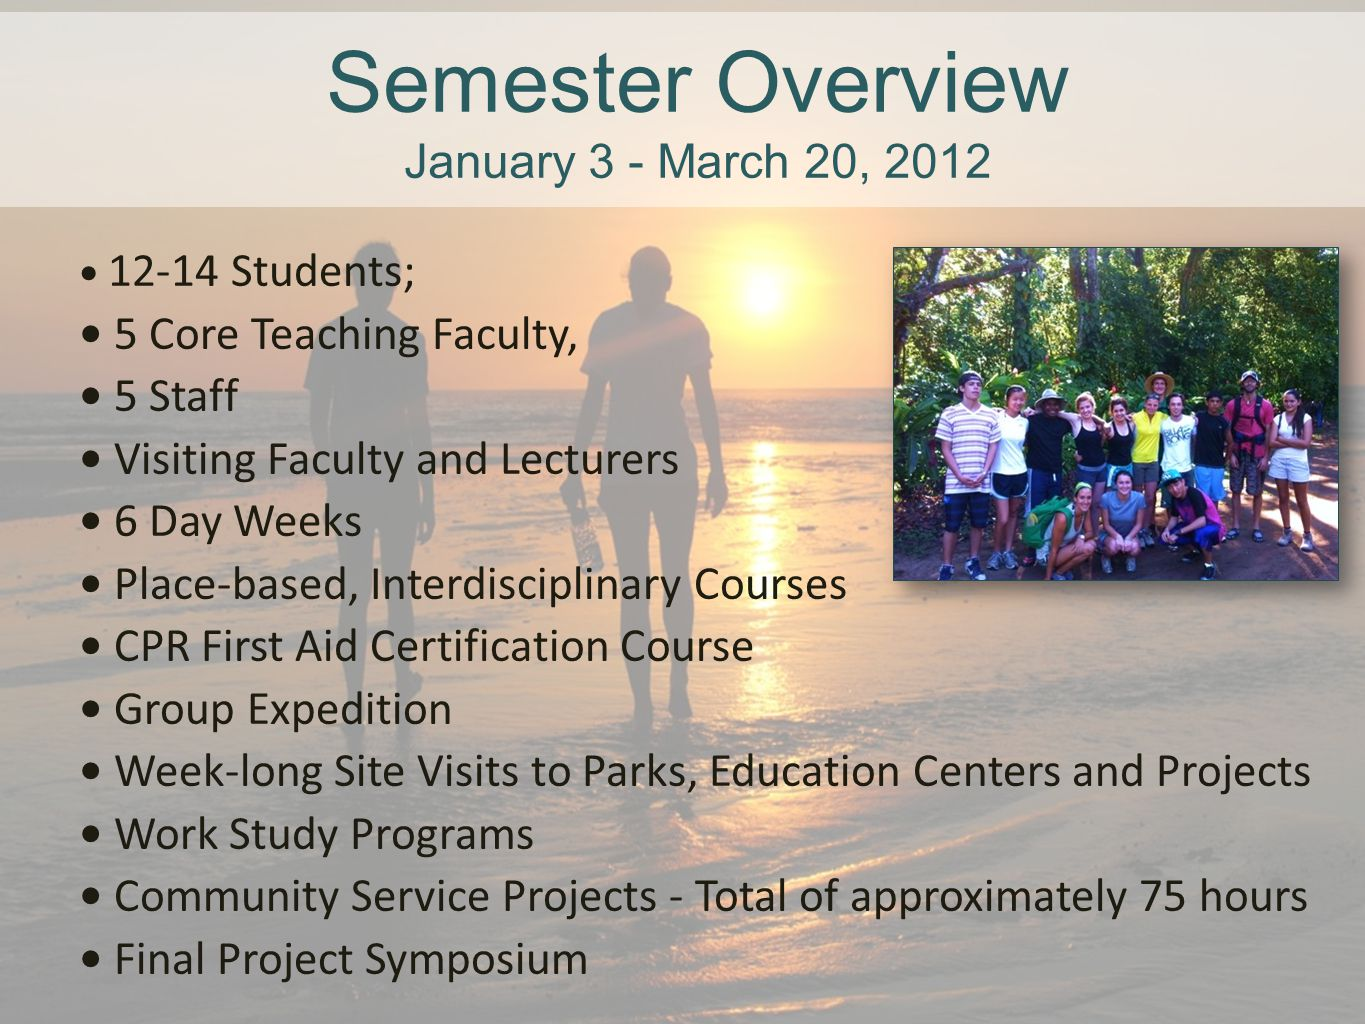 Semester Overview January 3 - March 20, 2012 12-14 Students; 5 Core Teaching Faculty, 5 Staff Visiting Faculty and Lecturers 6 Day Weeks Place-based,